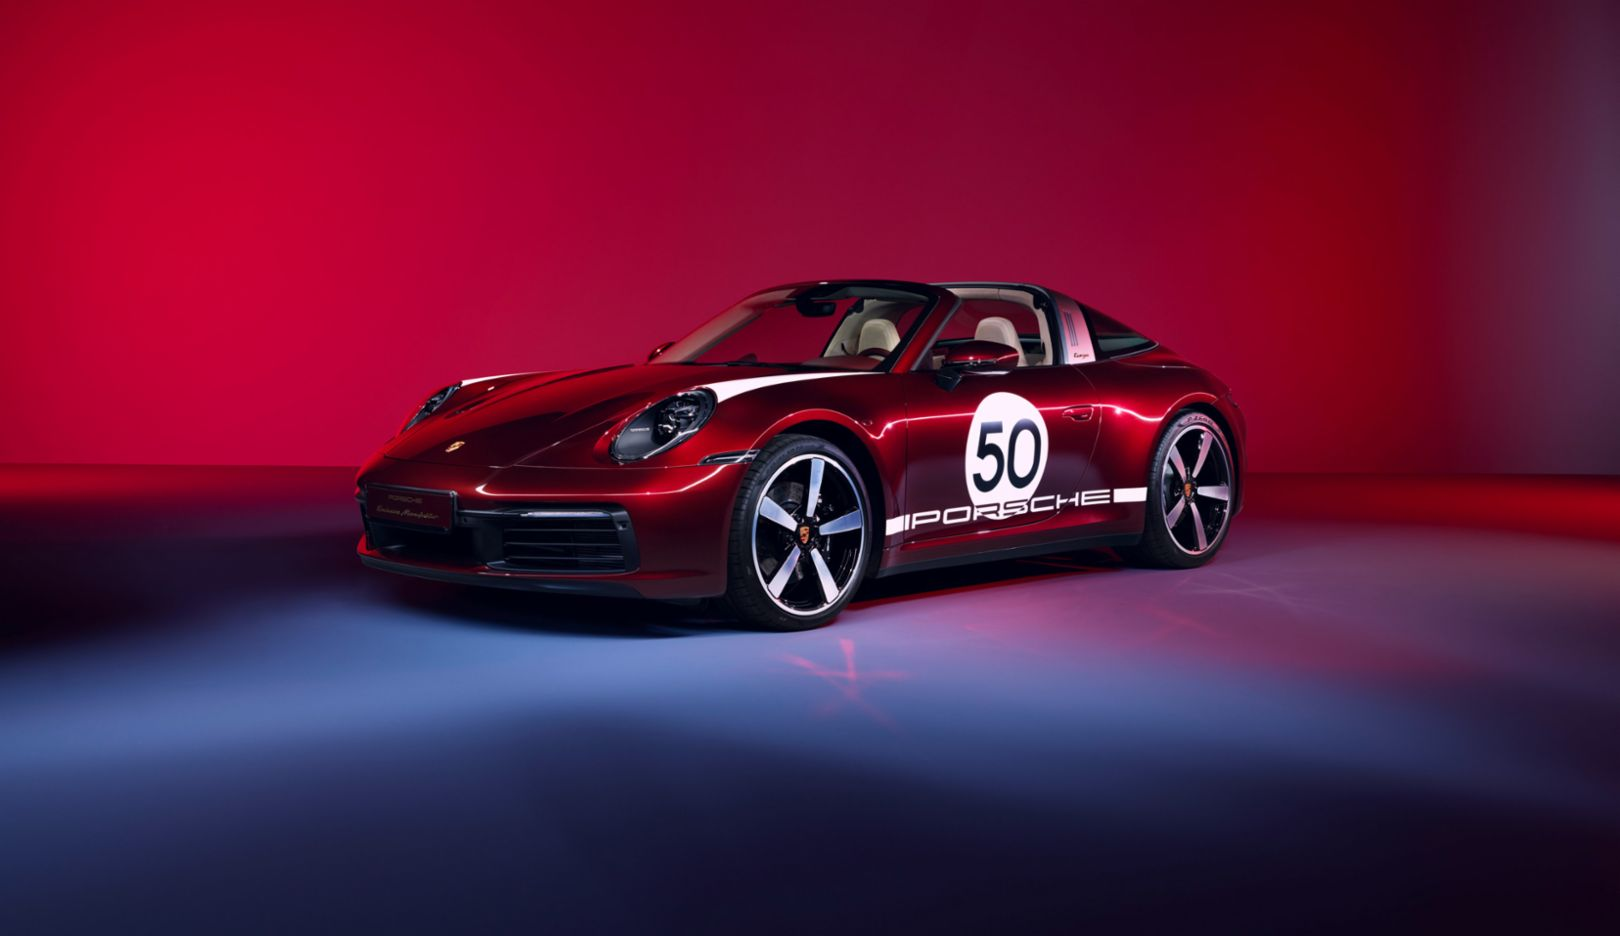 The Heritage Design Edition of the 911 Targa